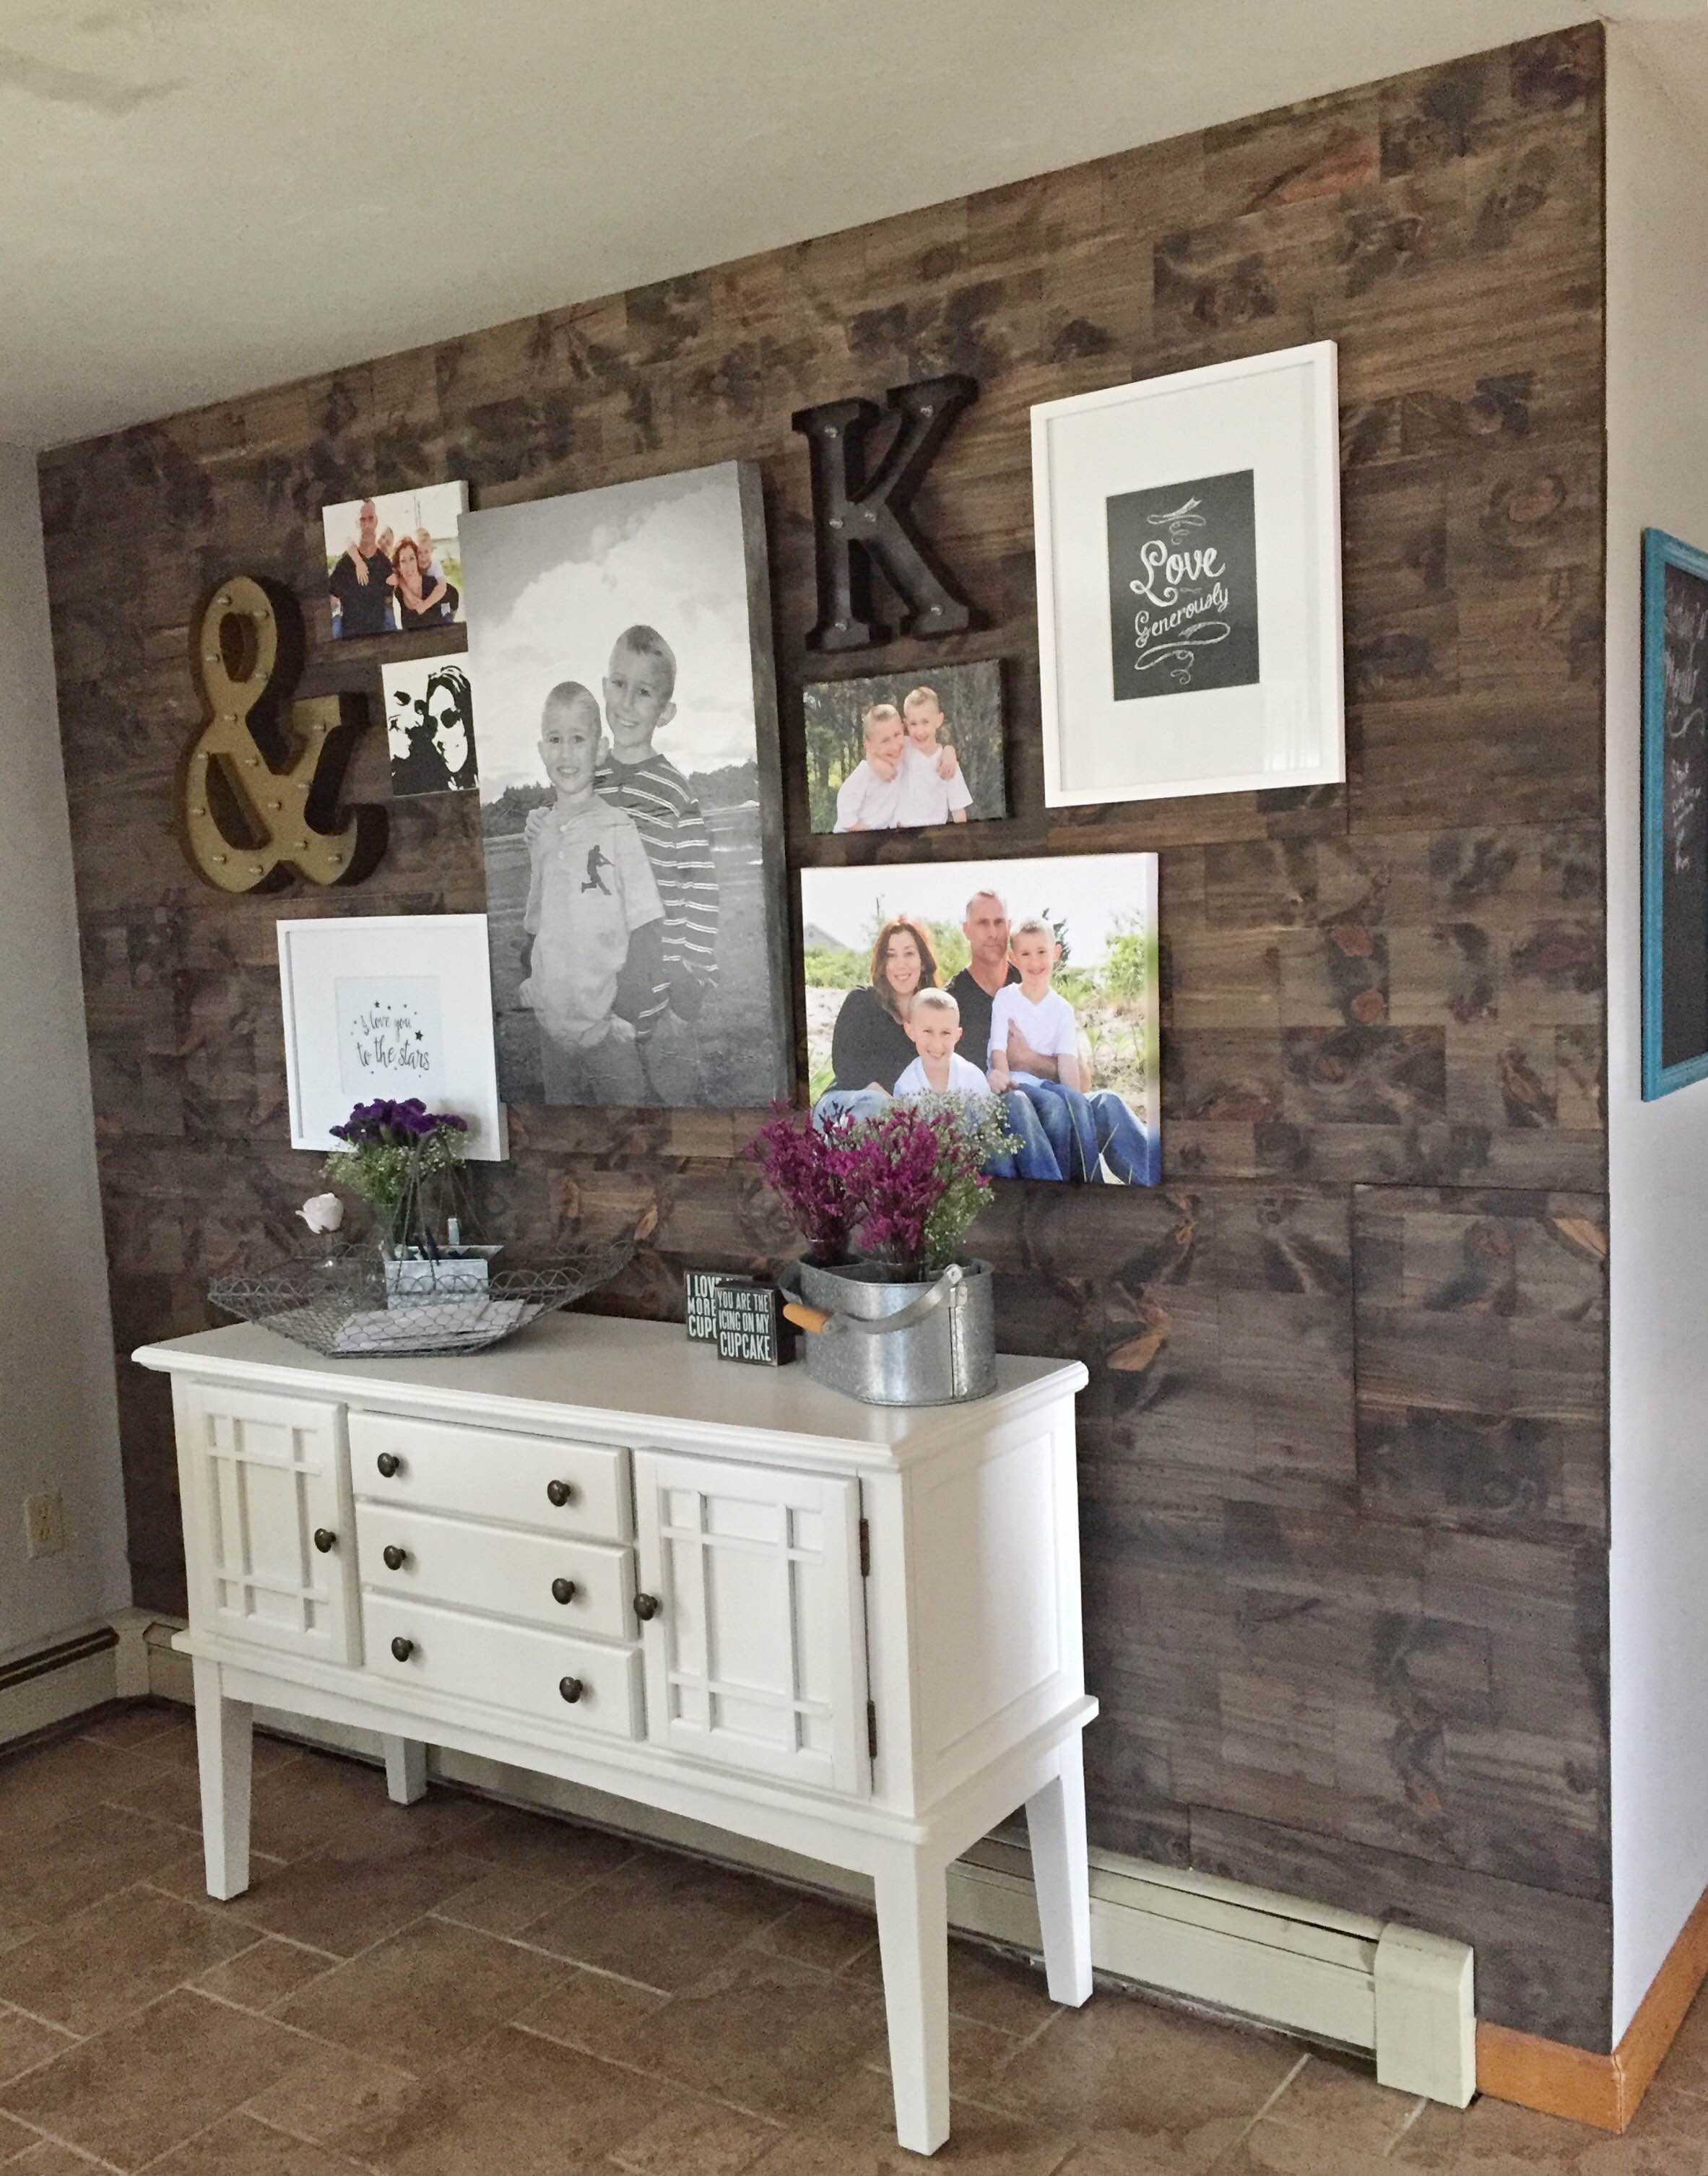 Design Wood Accent Wall how to fake a reclaimed wood wall accent faux diy